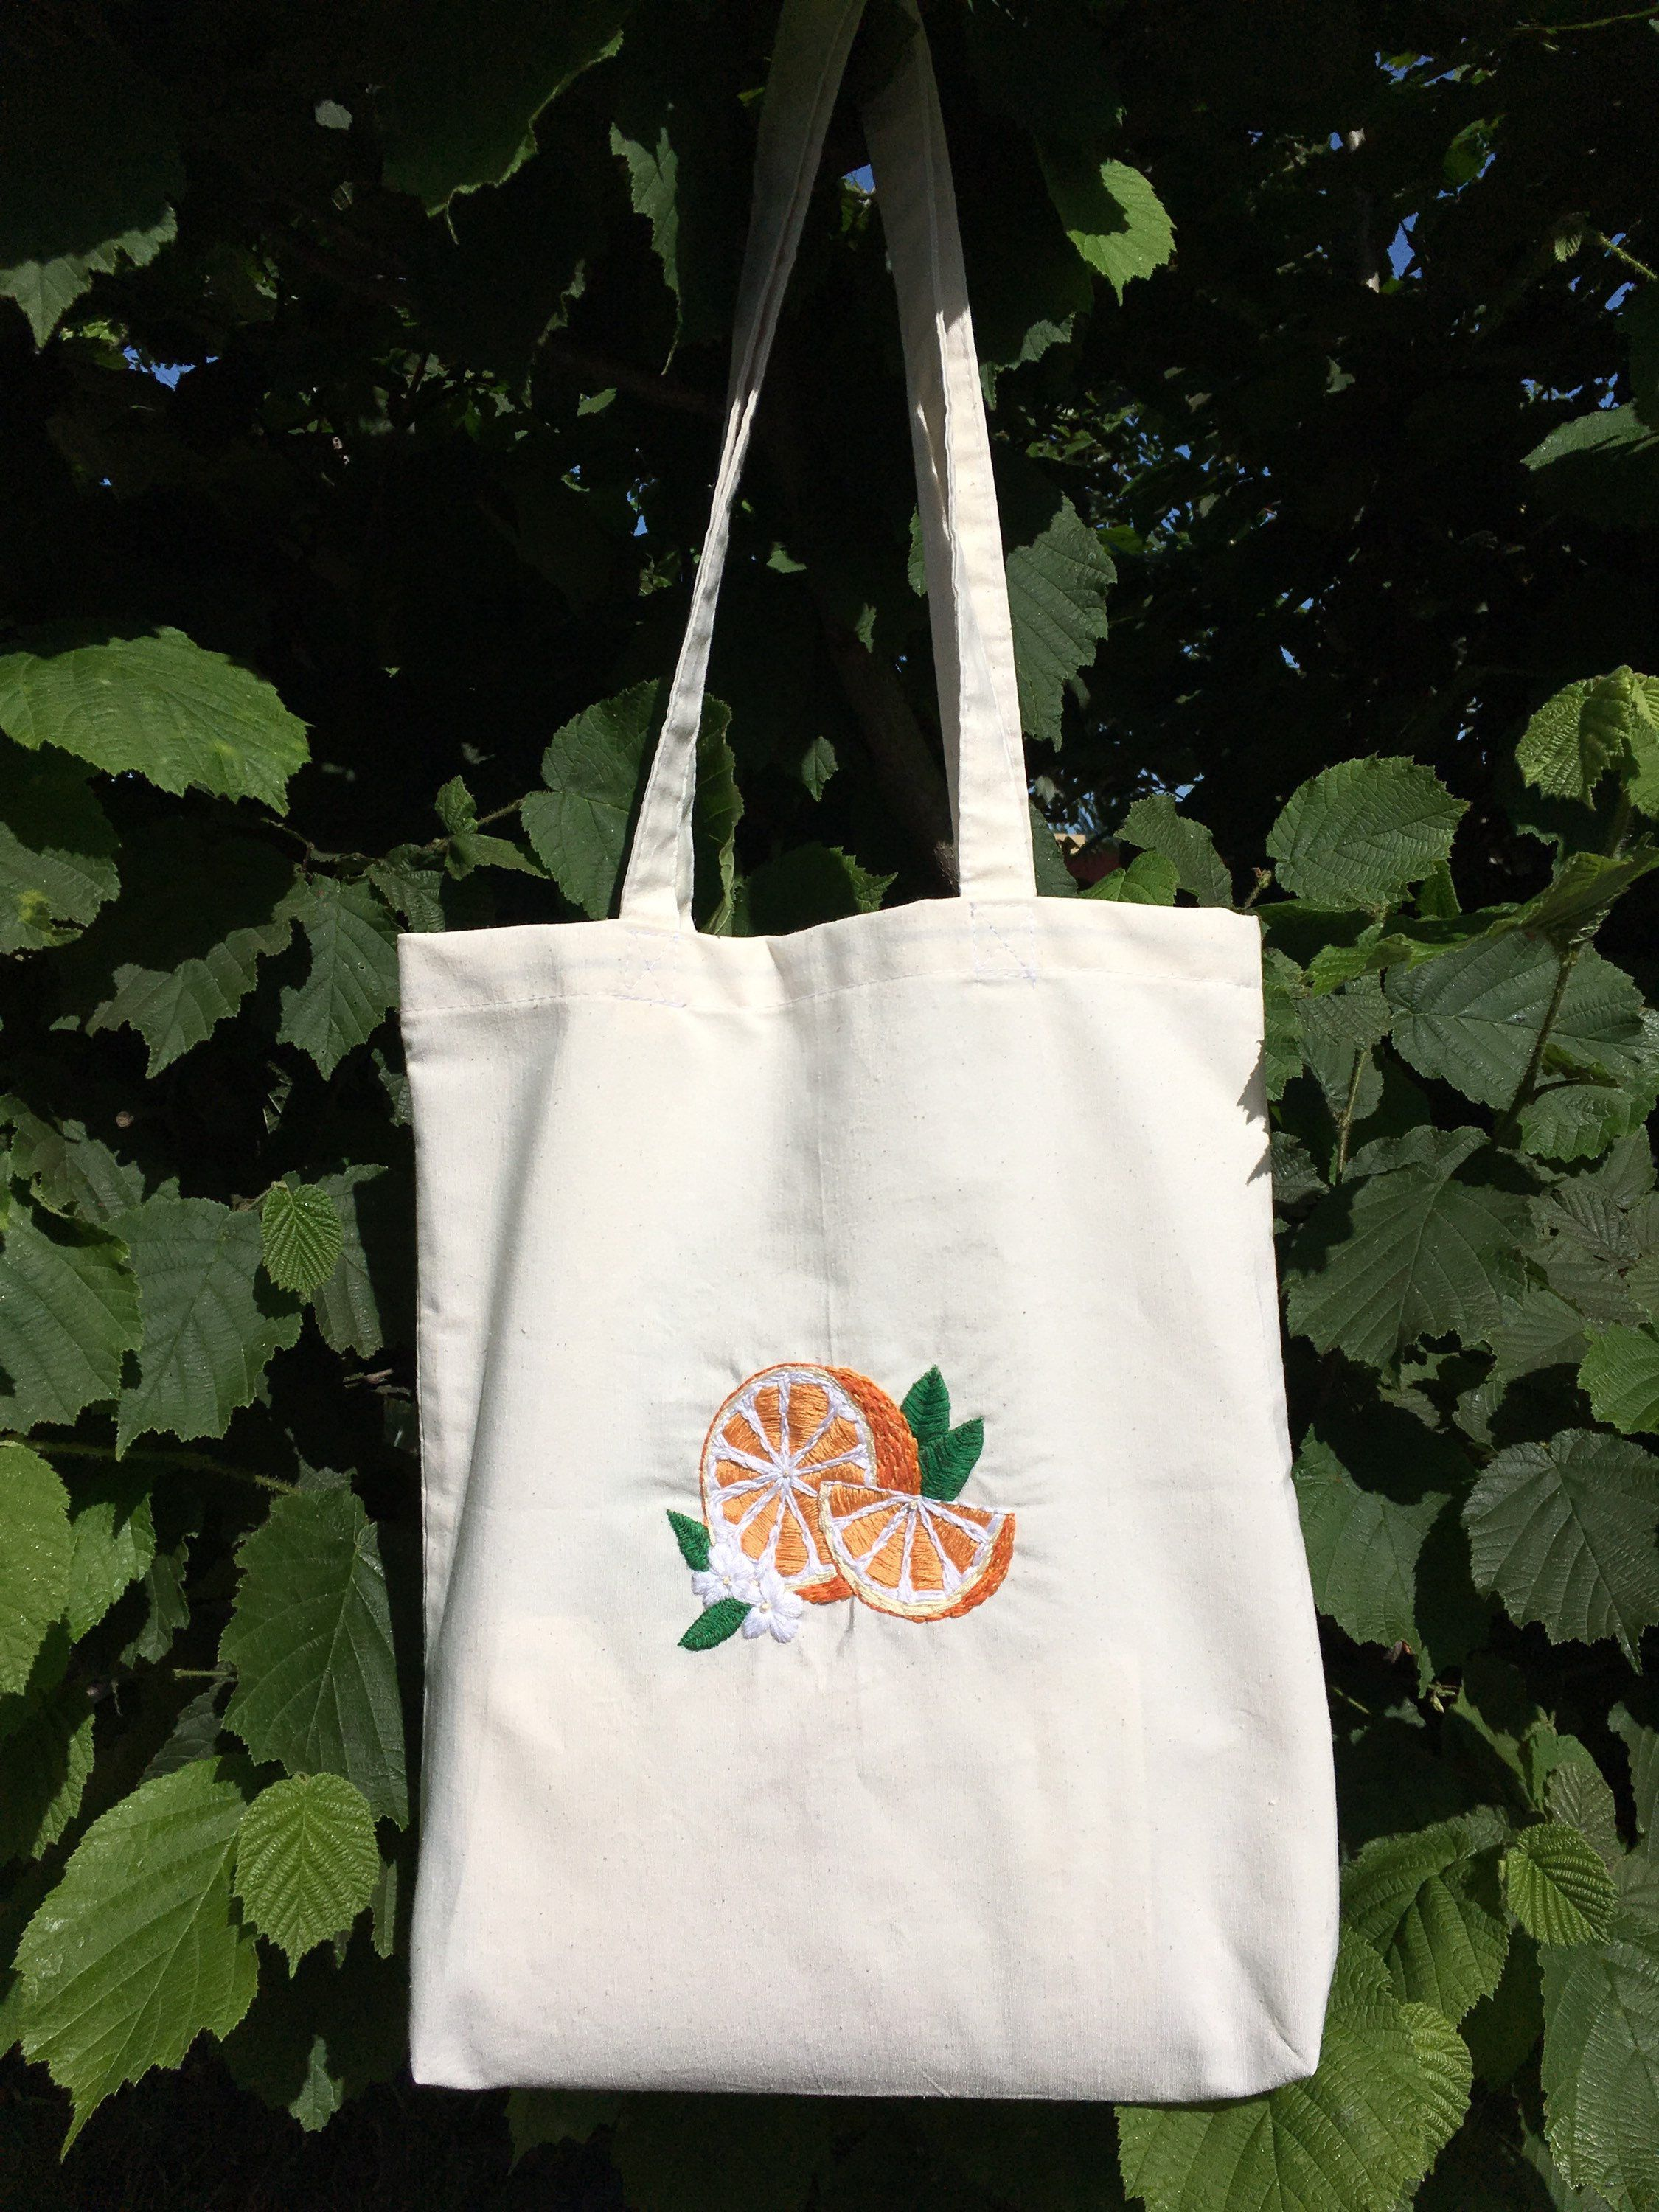 Aesthetic embroidery tote bag